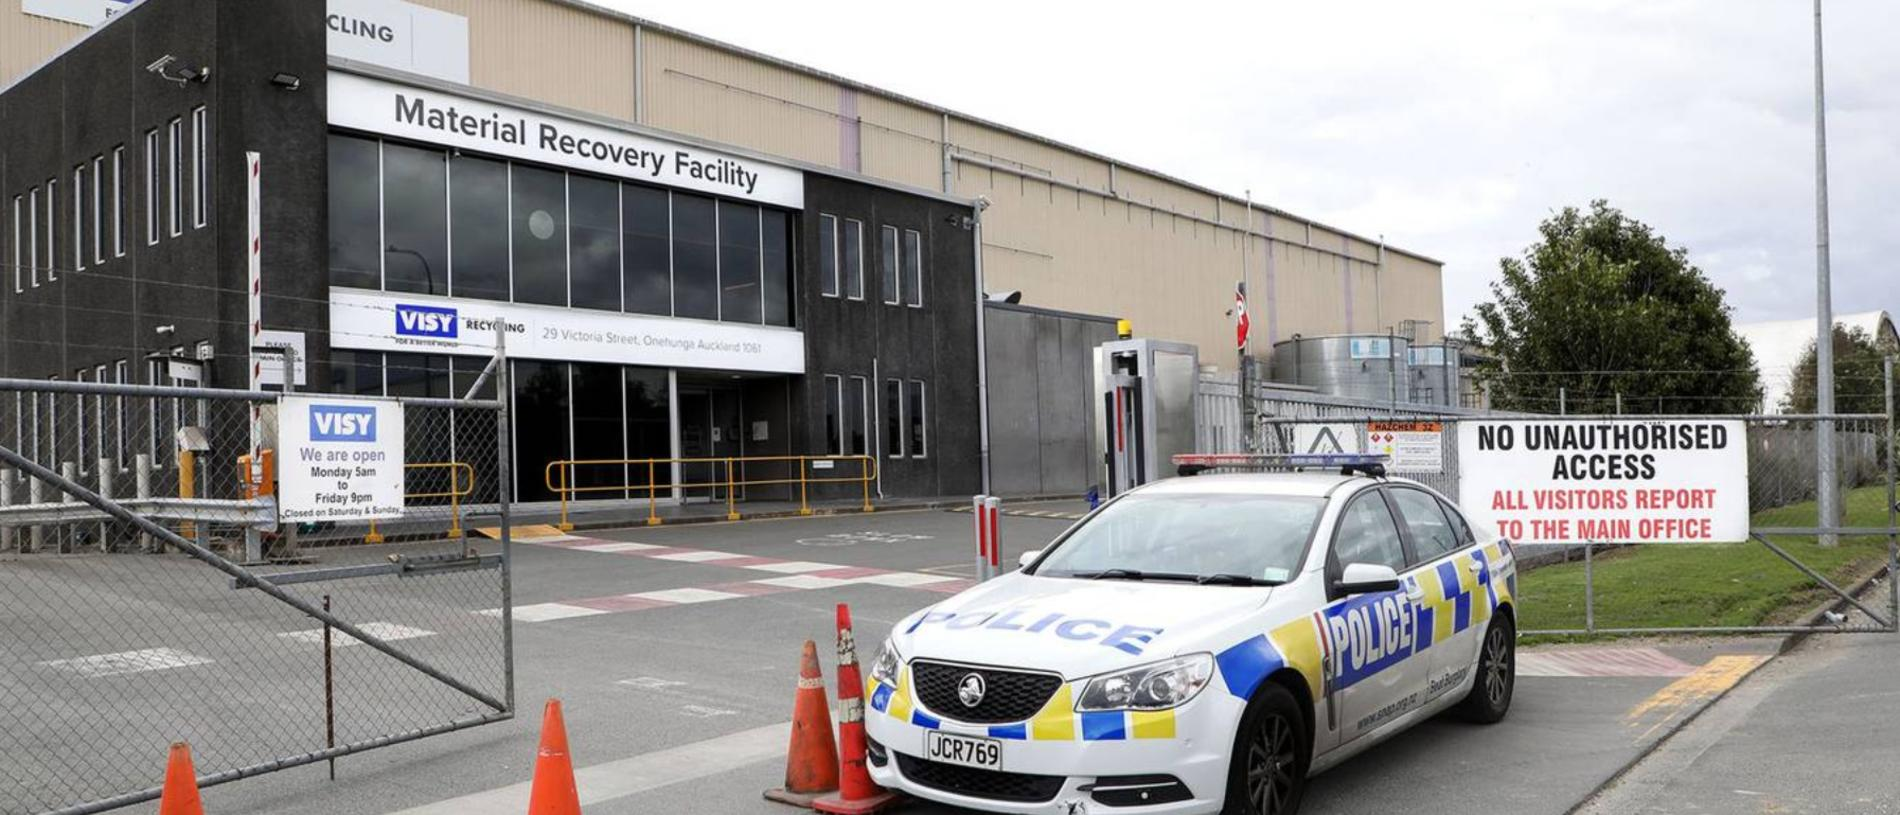 Police outside the recycling centre in Onehunga, Auckland where the body of a baby was found. Picture: Hayden Woodward/NZ Herald